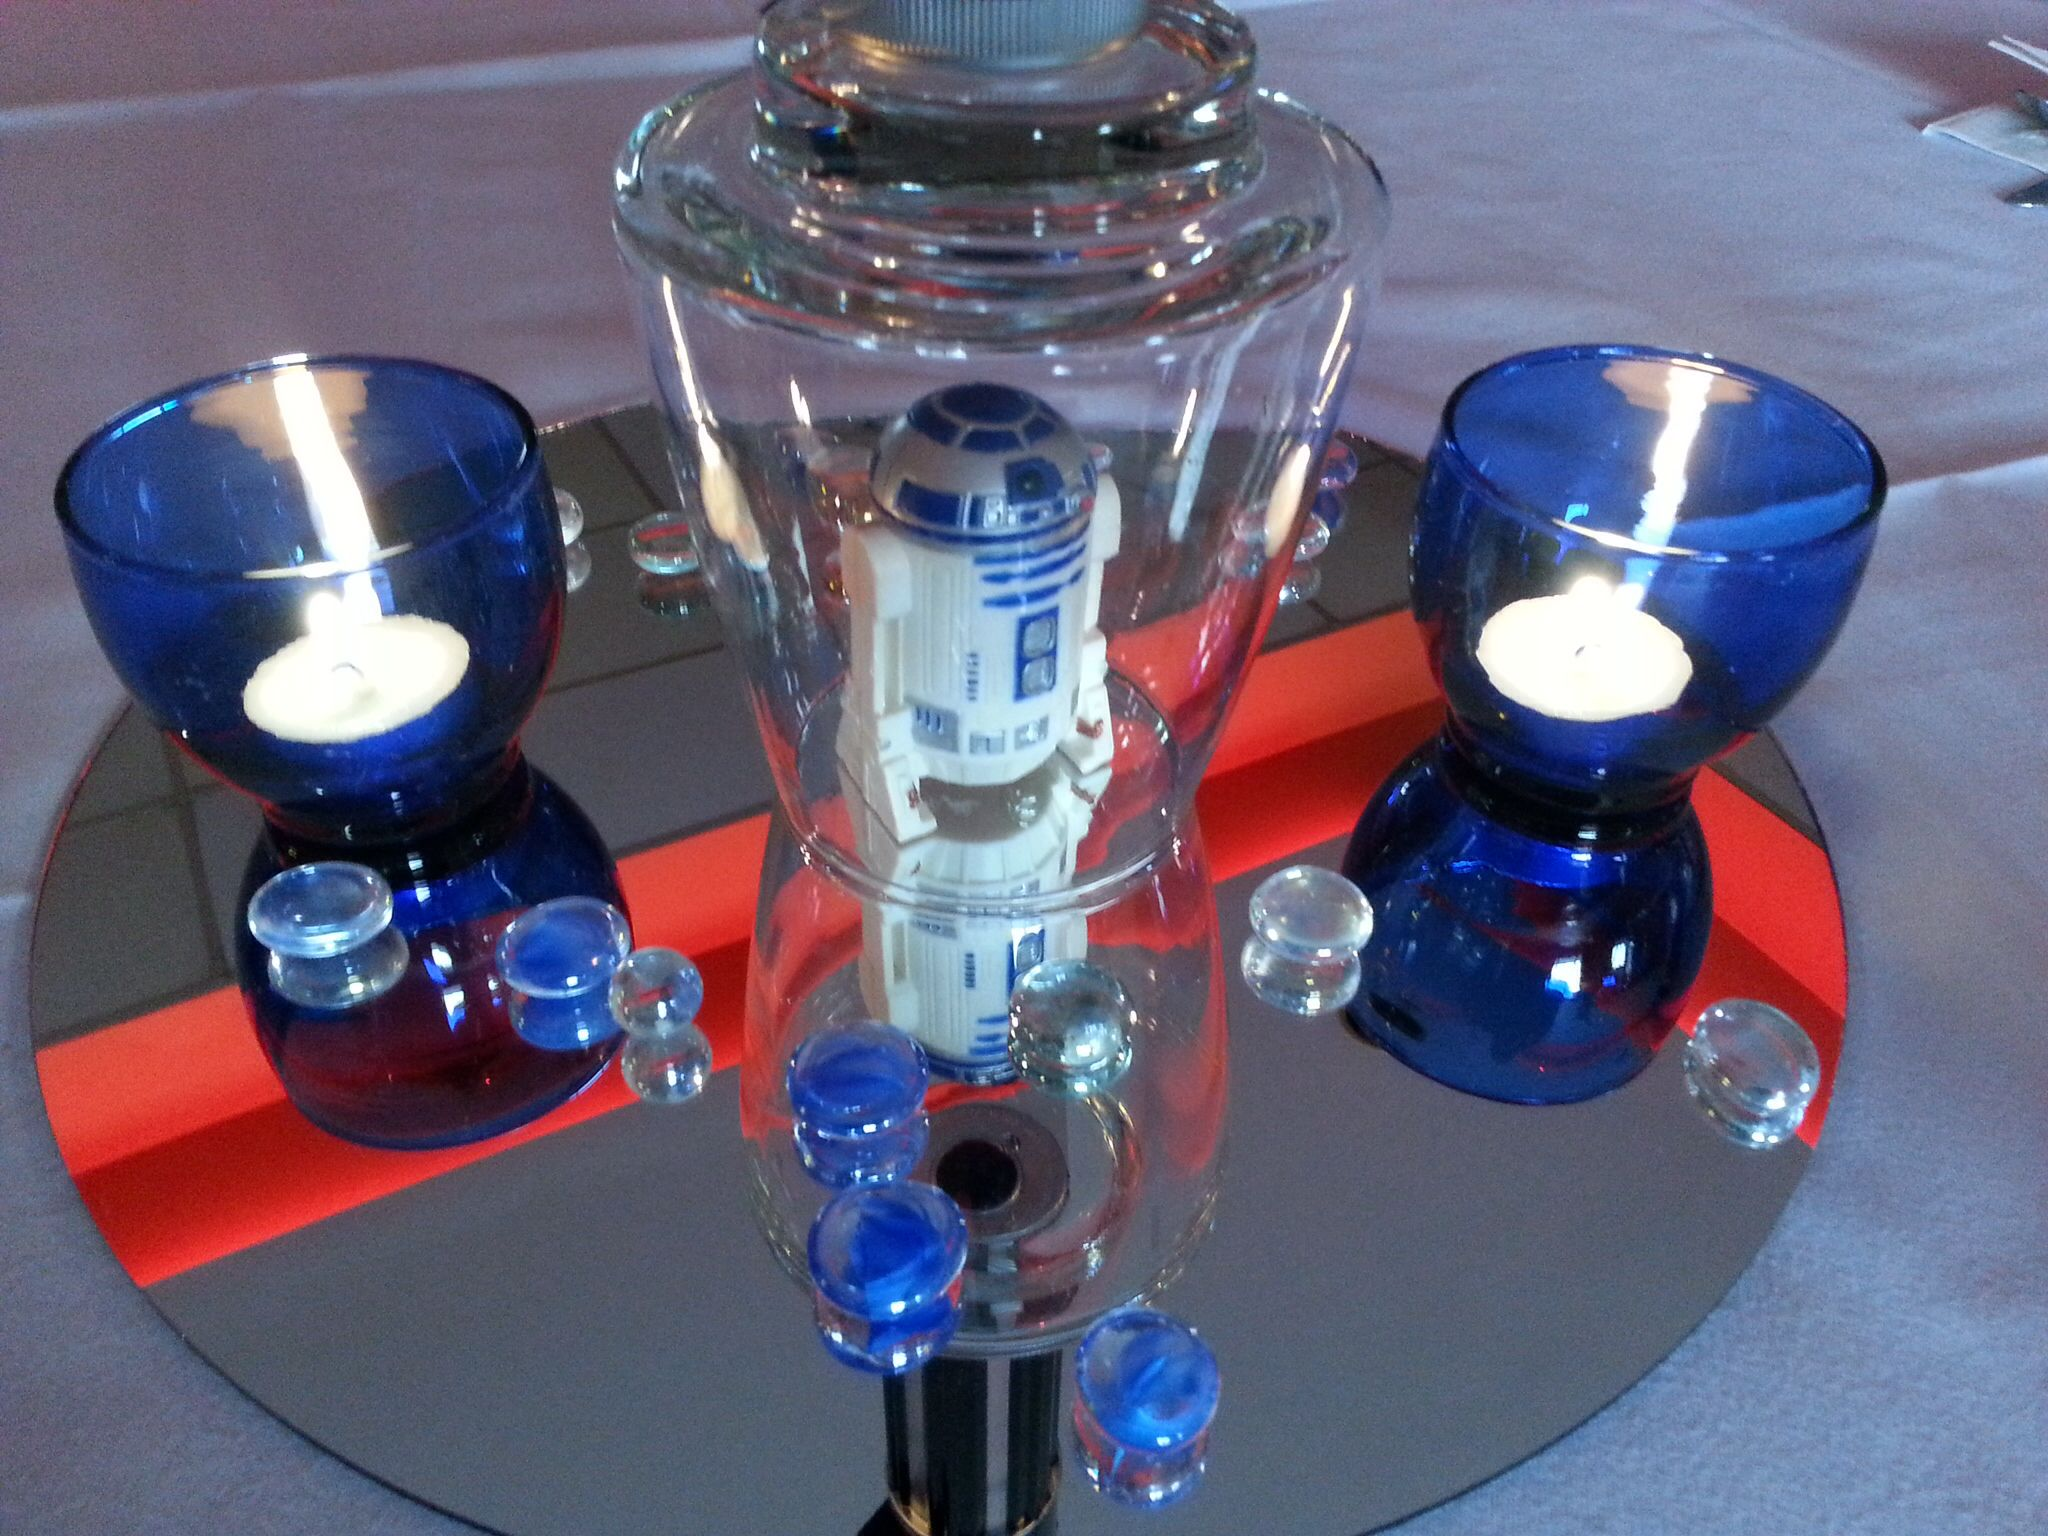 Star Wars Decorations Ideas Star Wars Theme Centerpiece R2d2 Credit C My Style Event